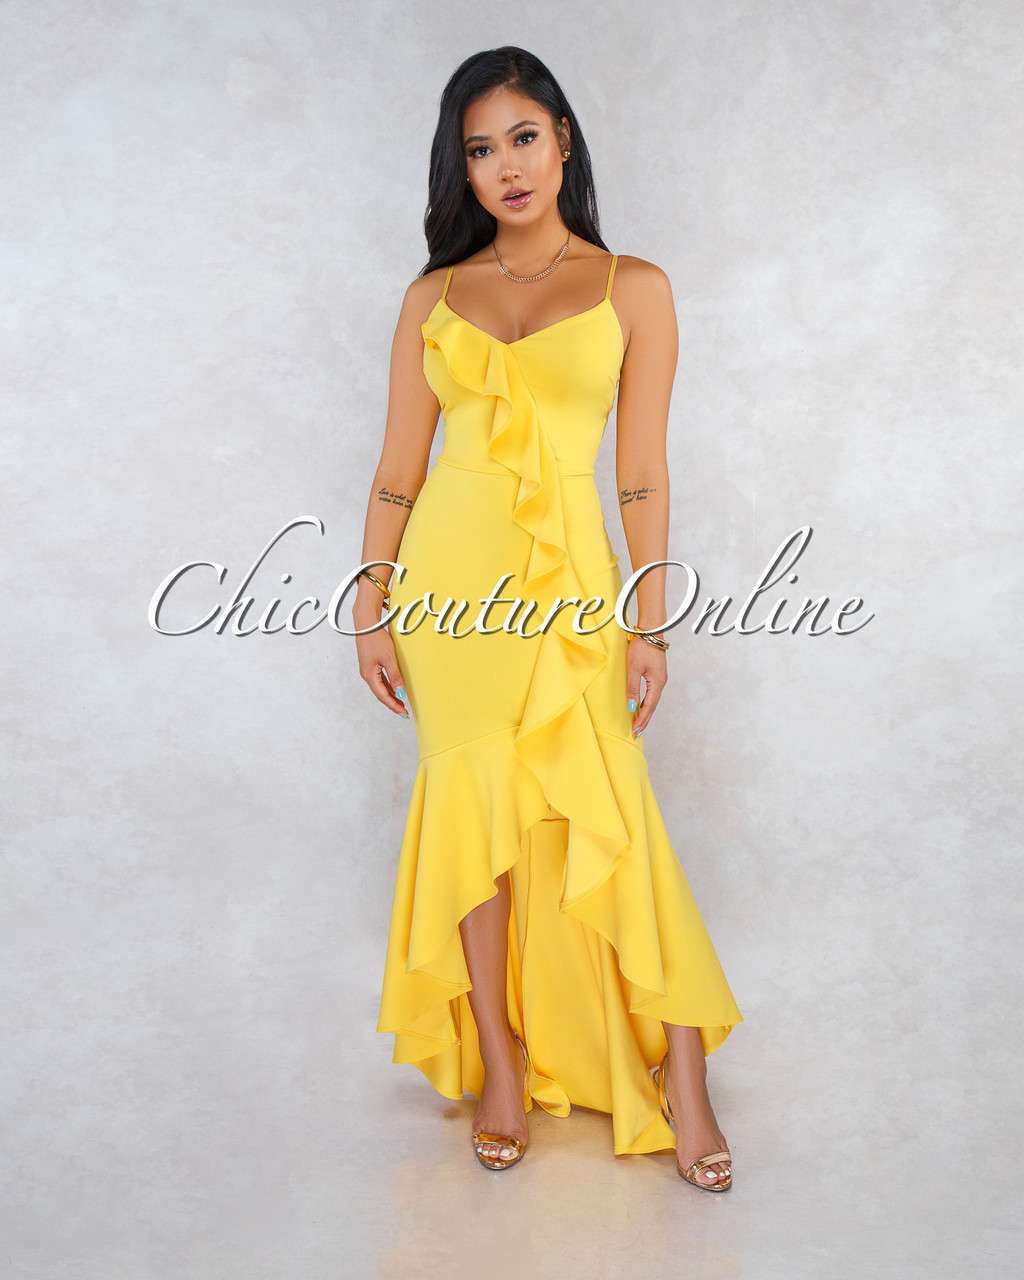 50a8cf72118 Constance Yellow Ruffle Accent High-Low Maxi Dress. Price   50.00. Image 1